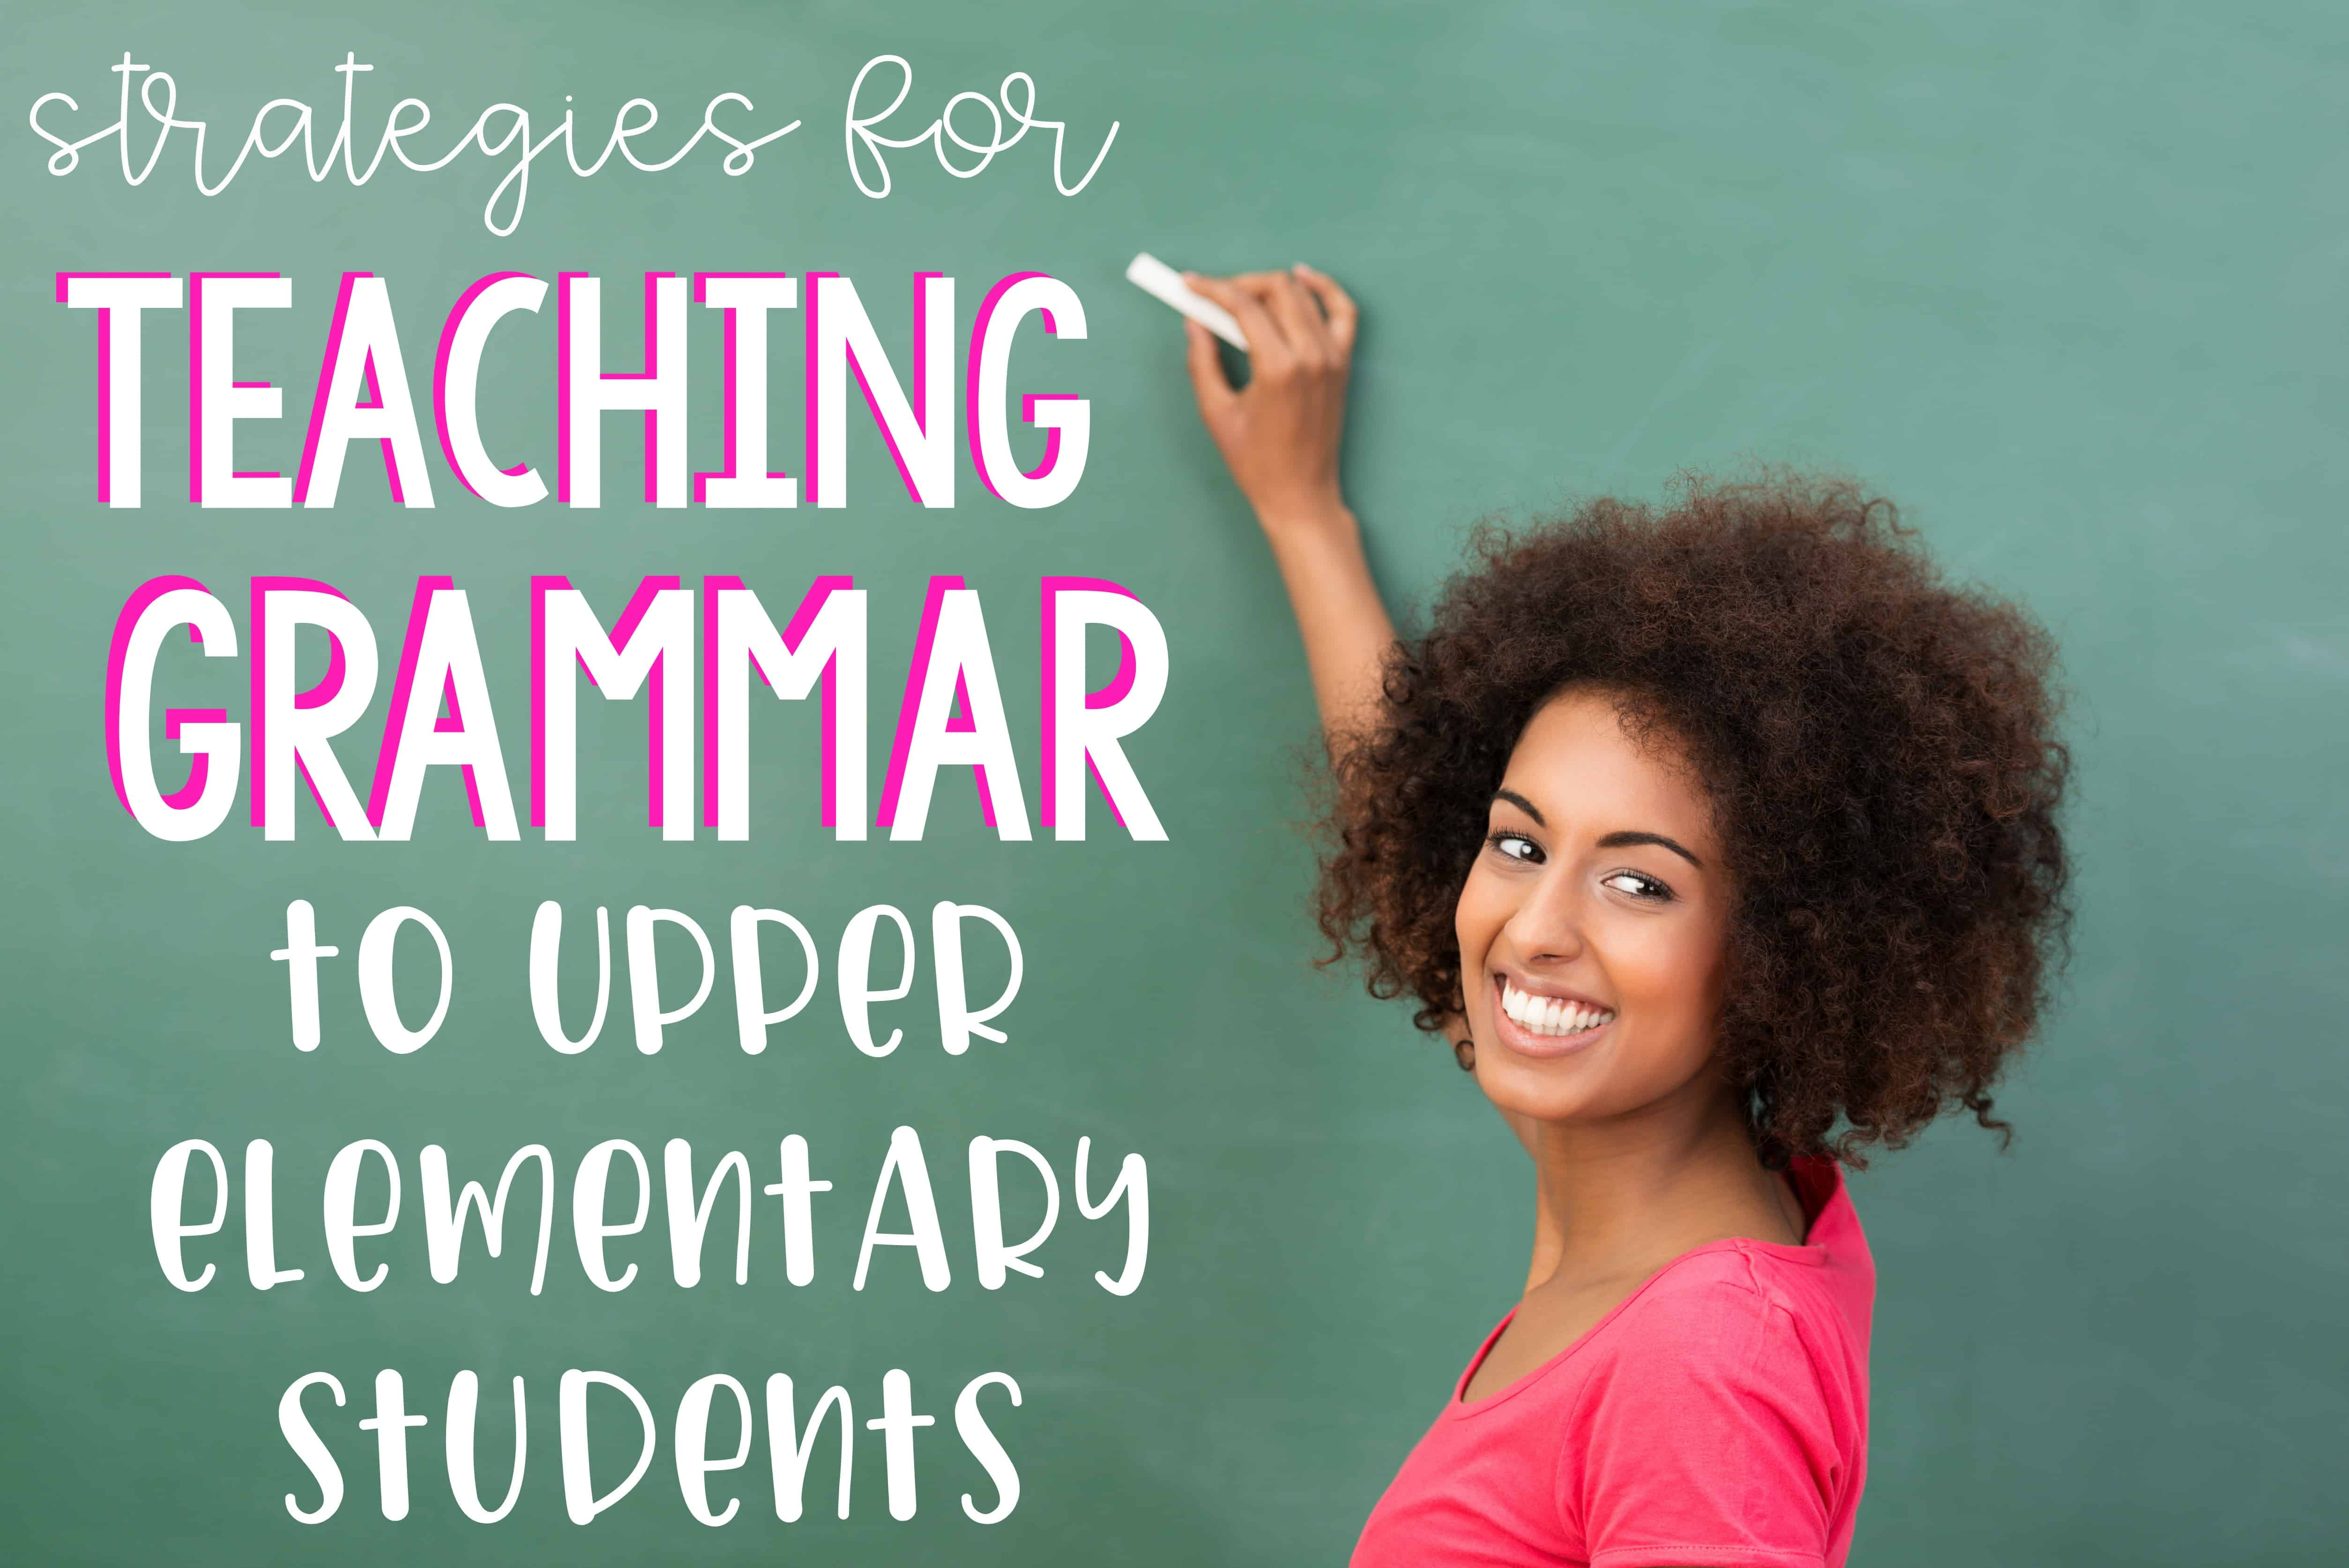 Strategies for Teaching Grammar to Upper Elementary Students text with a smiling Black woman holding a piece of chalk to a large green chalkboard.